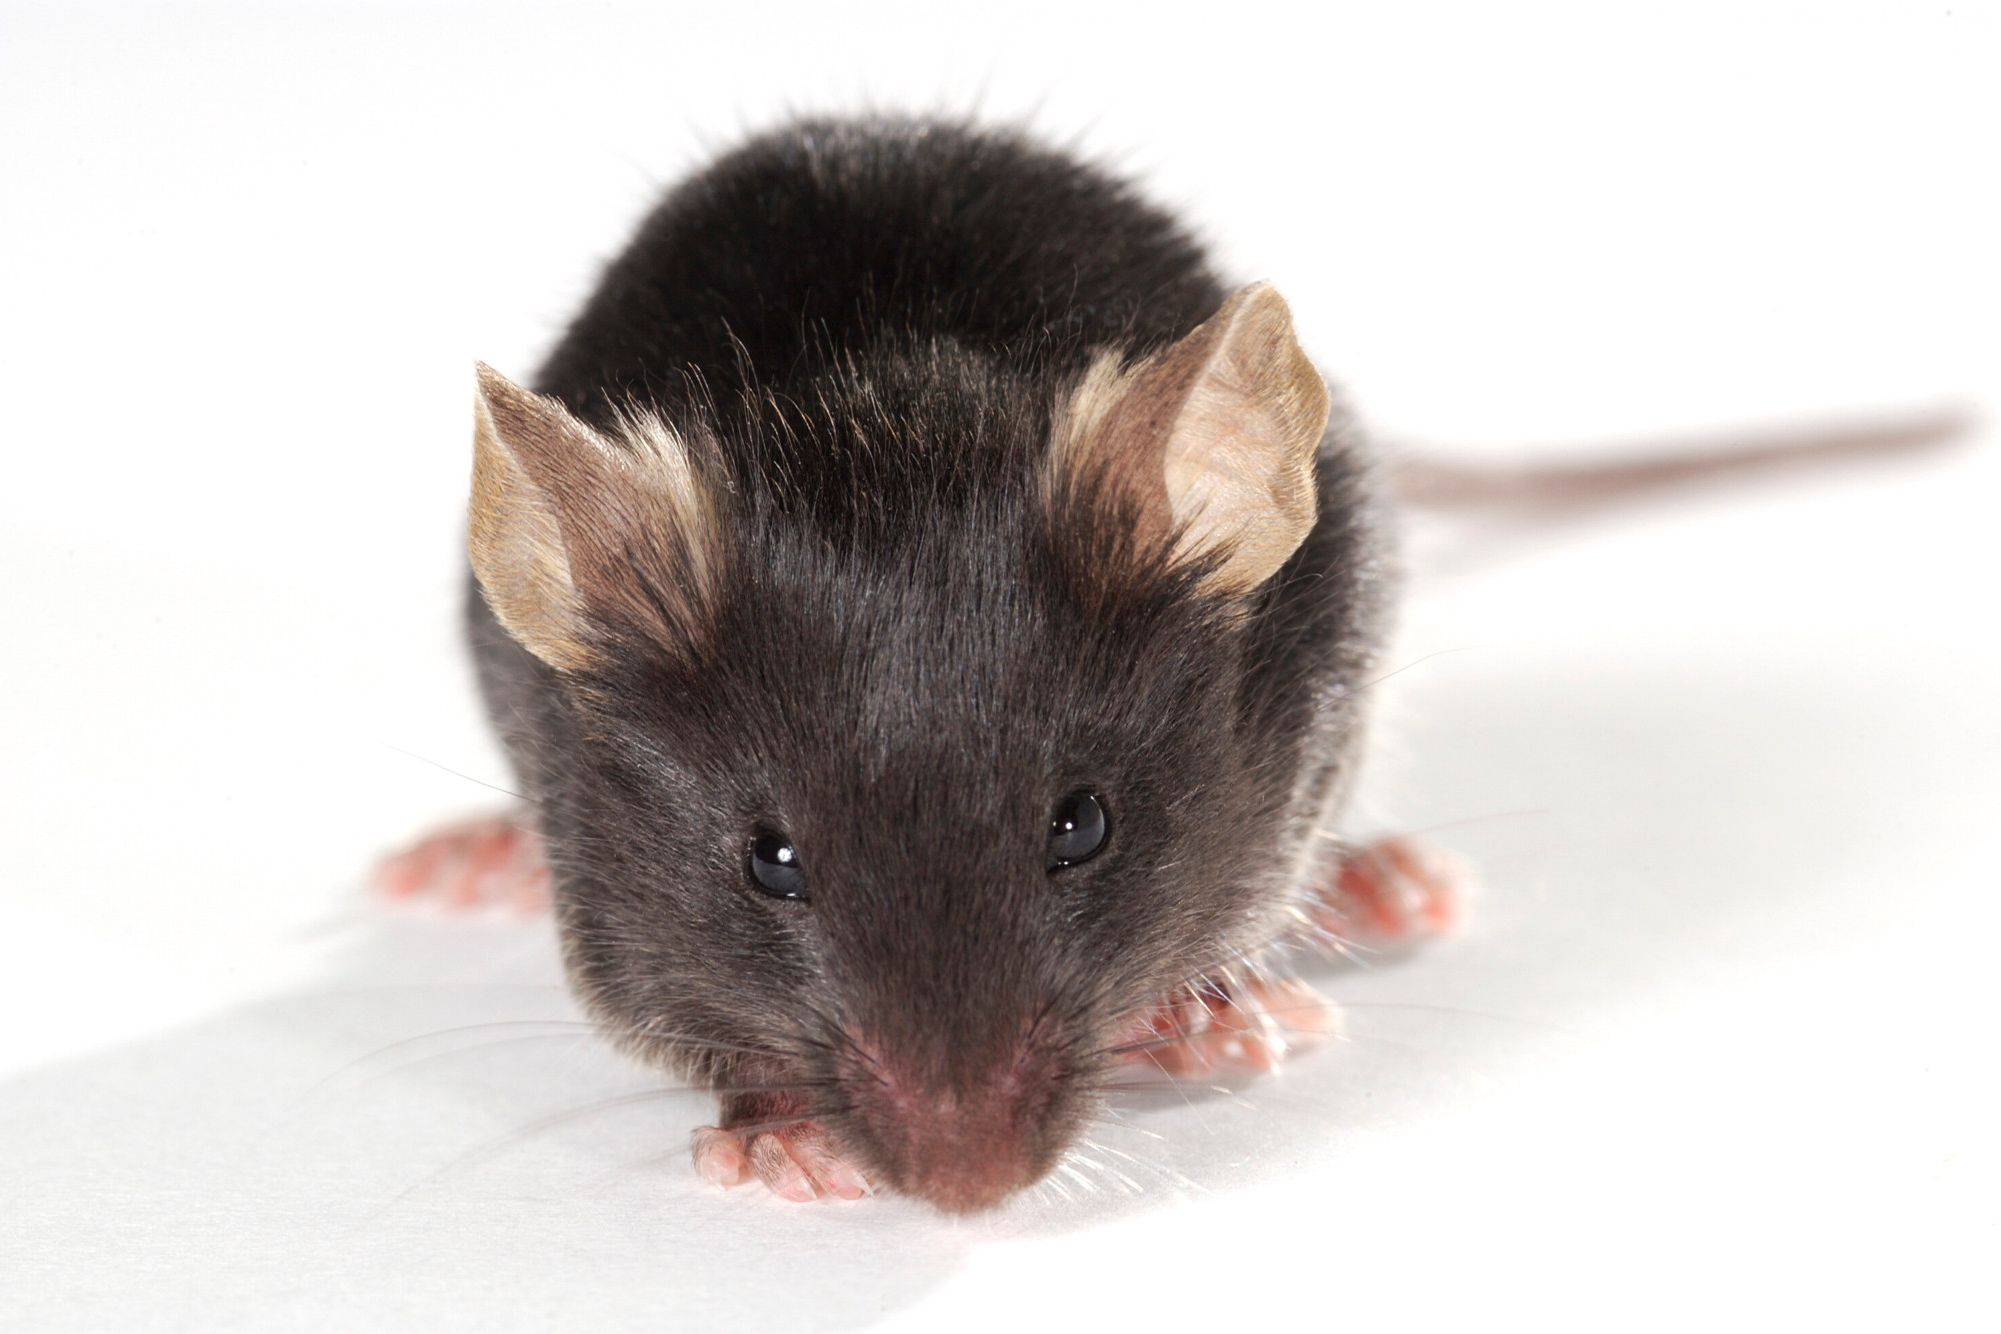 CVN Mouse model of Alzheimer's disease drug discovery to test new therapeutics for Alzheimer's disease.